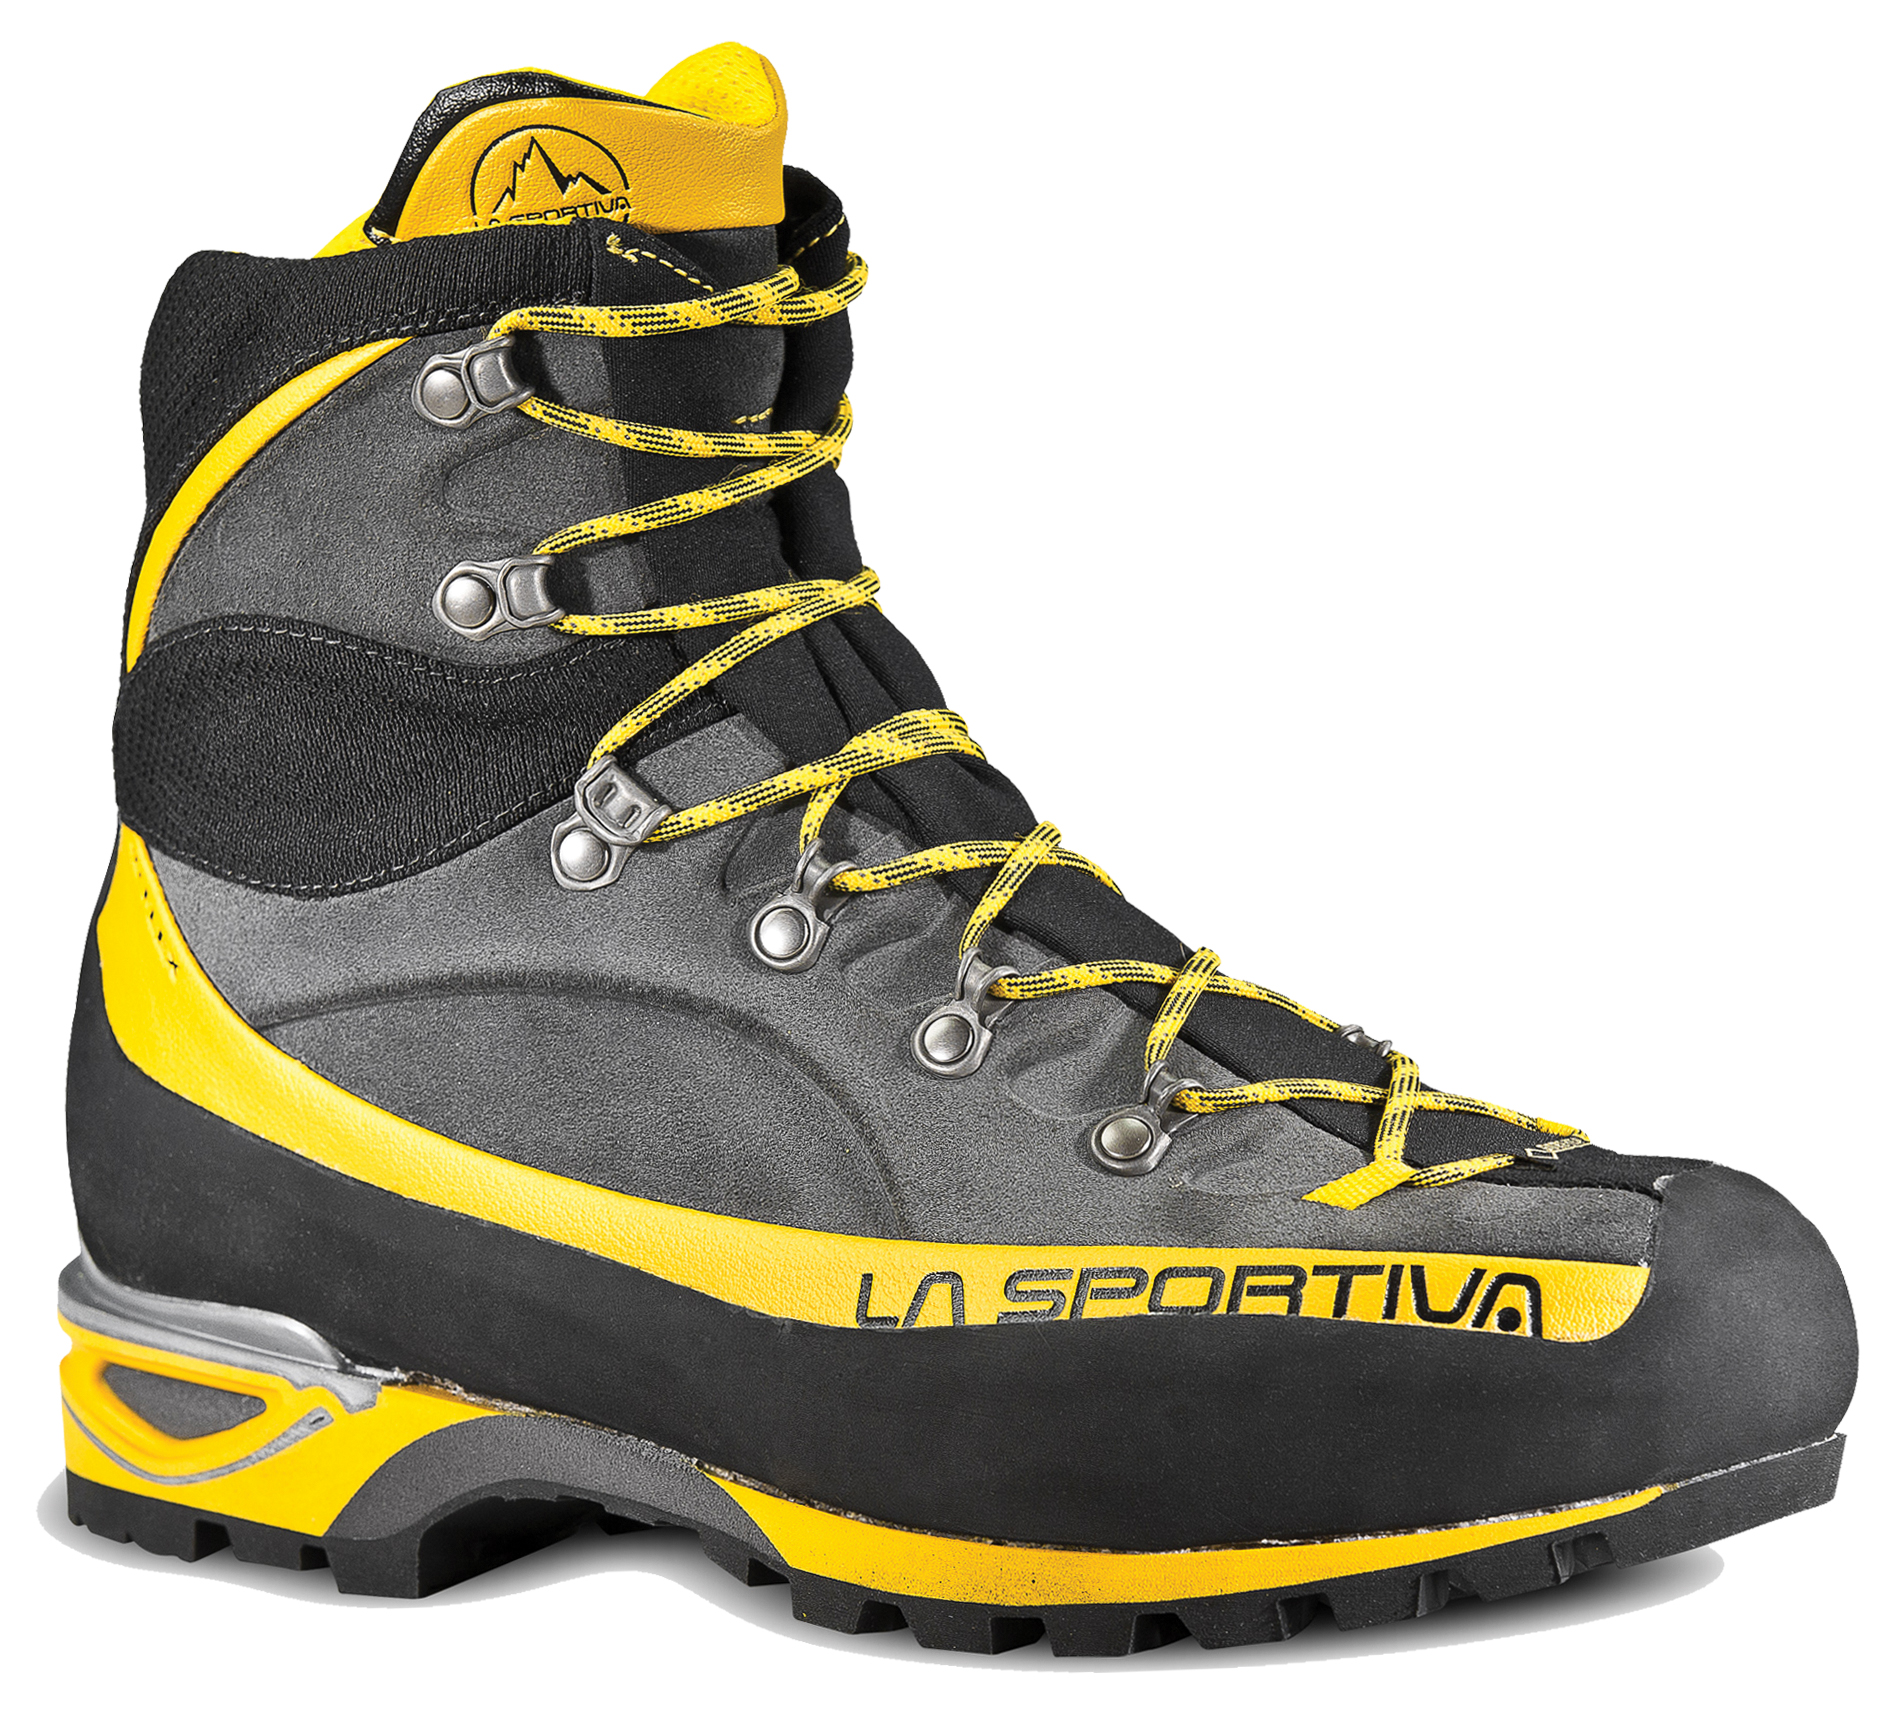 La Sportiva Debuts New Footwear and Apparel for Spring 2015 ...